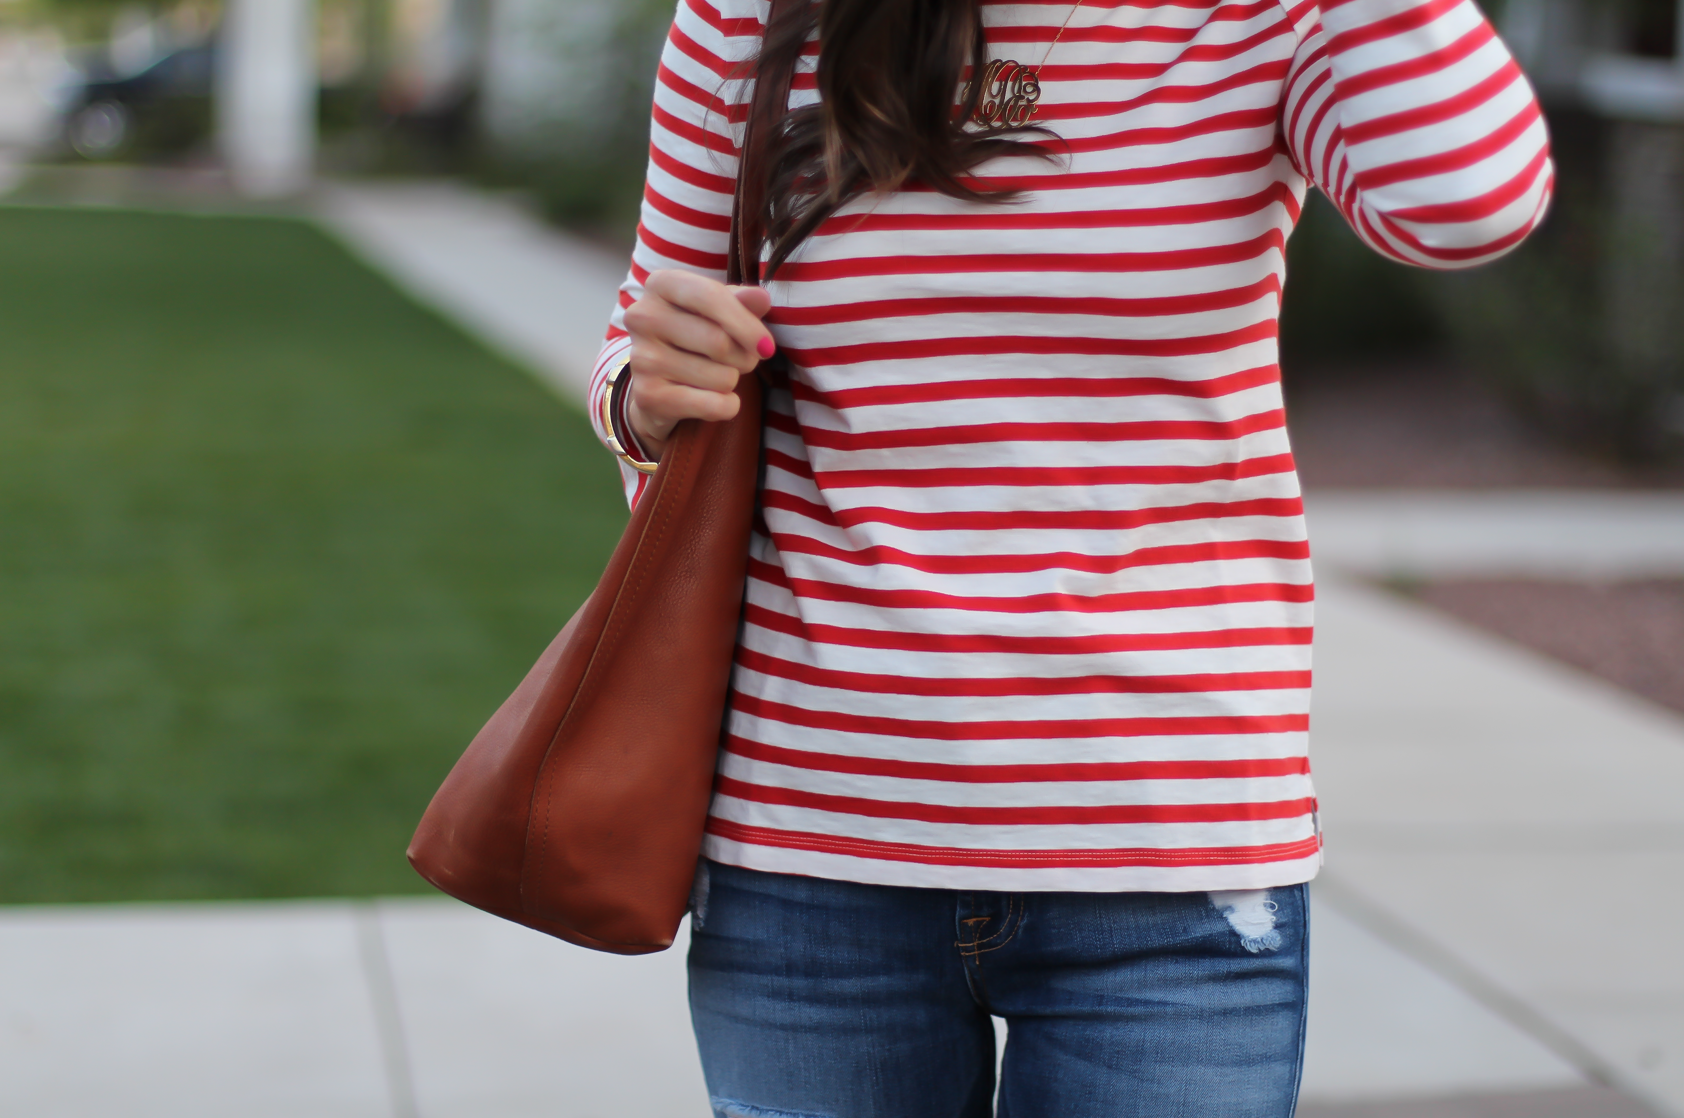 Red Striped Boatneck Tee, Distressed Skinny Jeans, Cognac Leather Flip Flop Sandals, Cognac Tote, J.Crew, 7 for All Mankind, Madewell 14